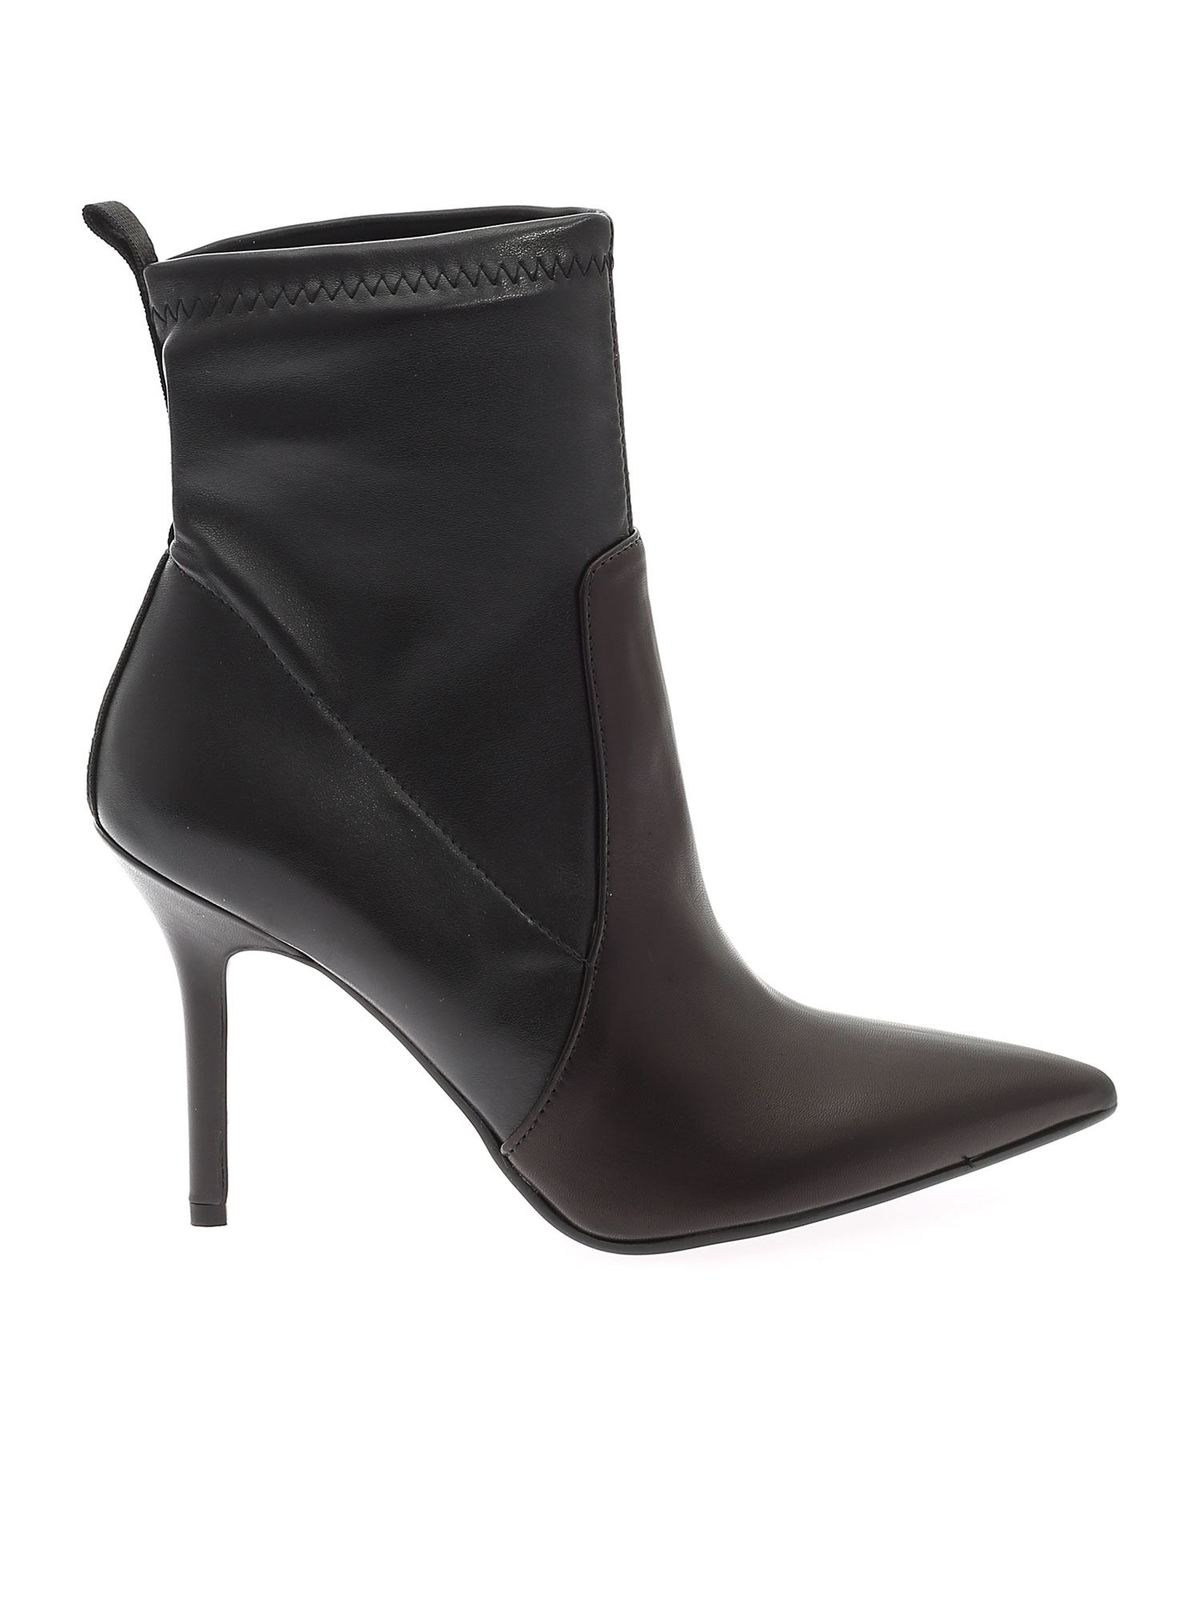 Karl Lagerfeld POINTED ANKLE BOOTS IN BLACK